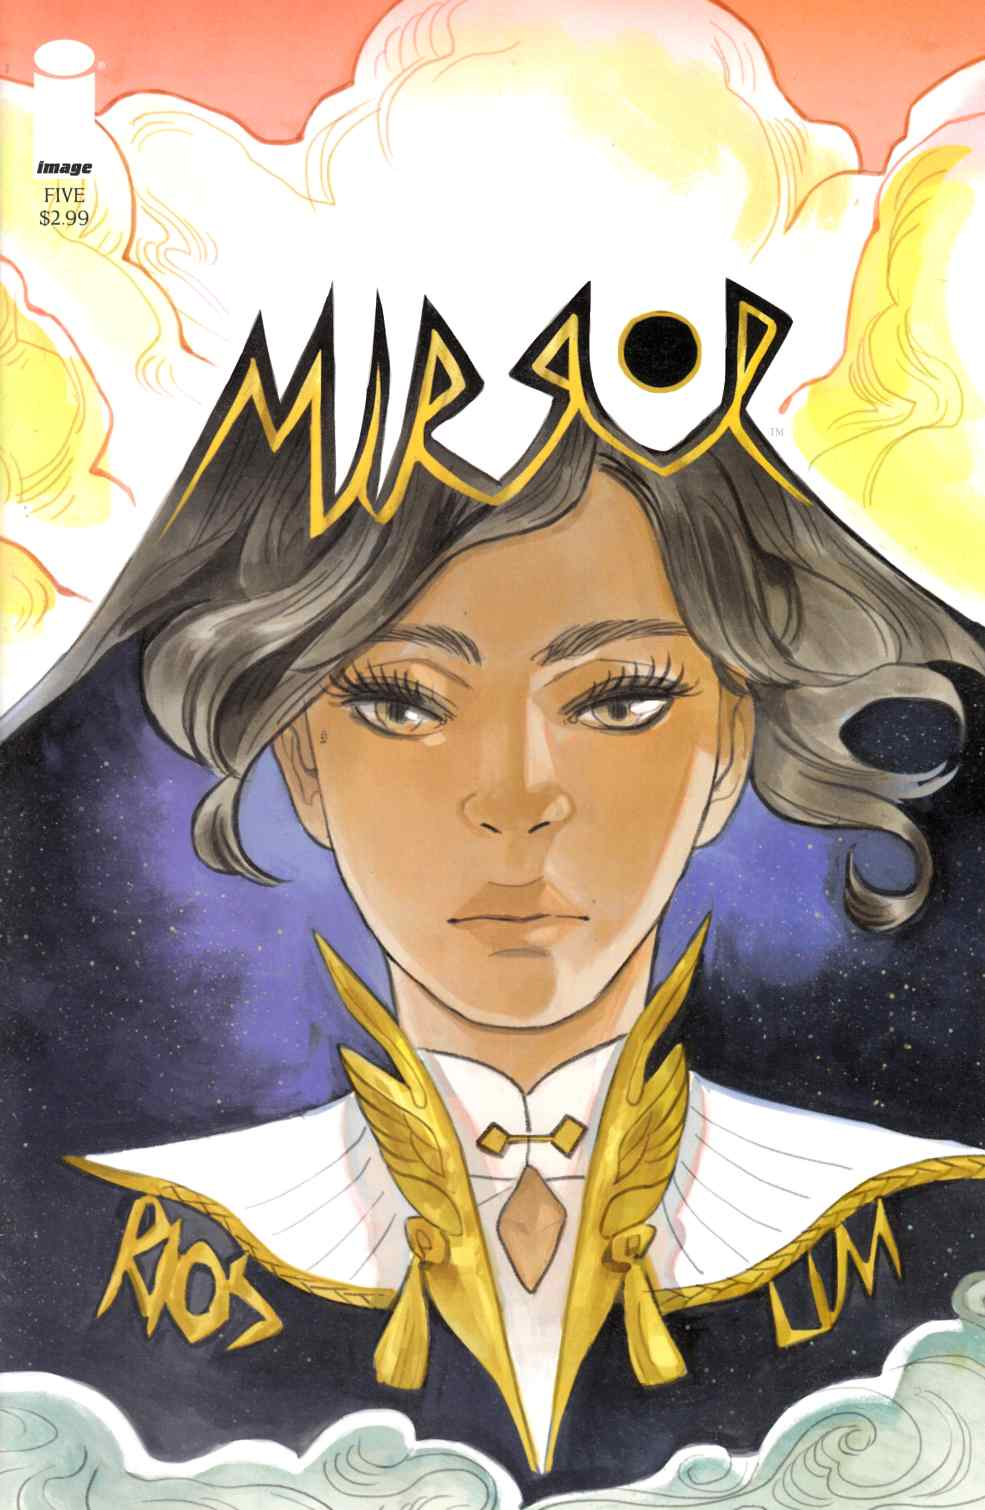 Mirror #5 [Image Comic]